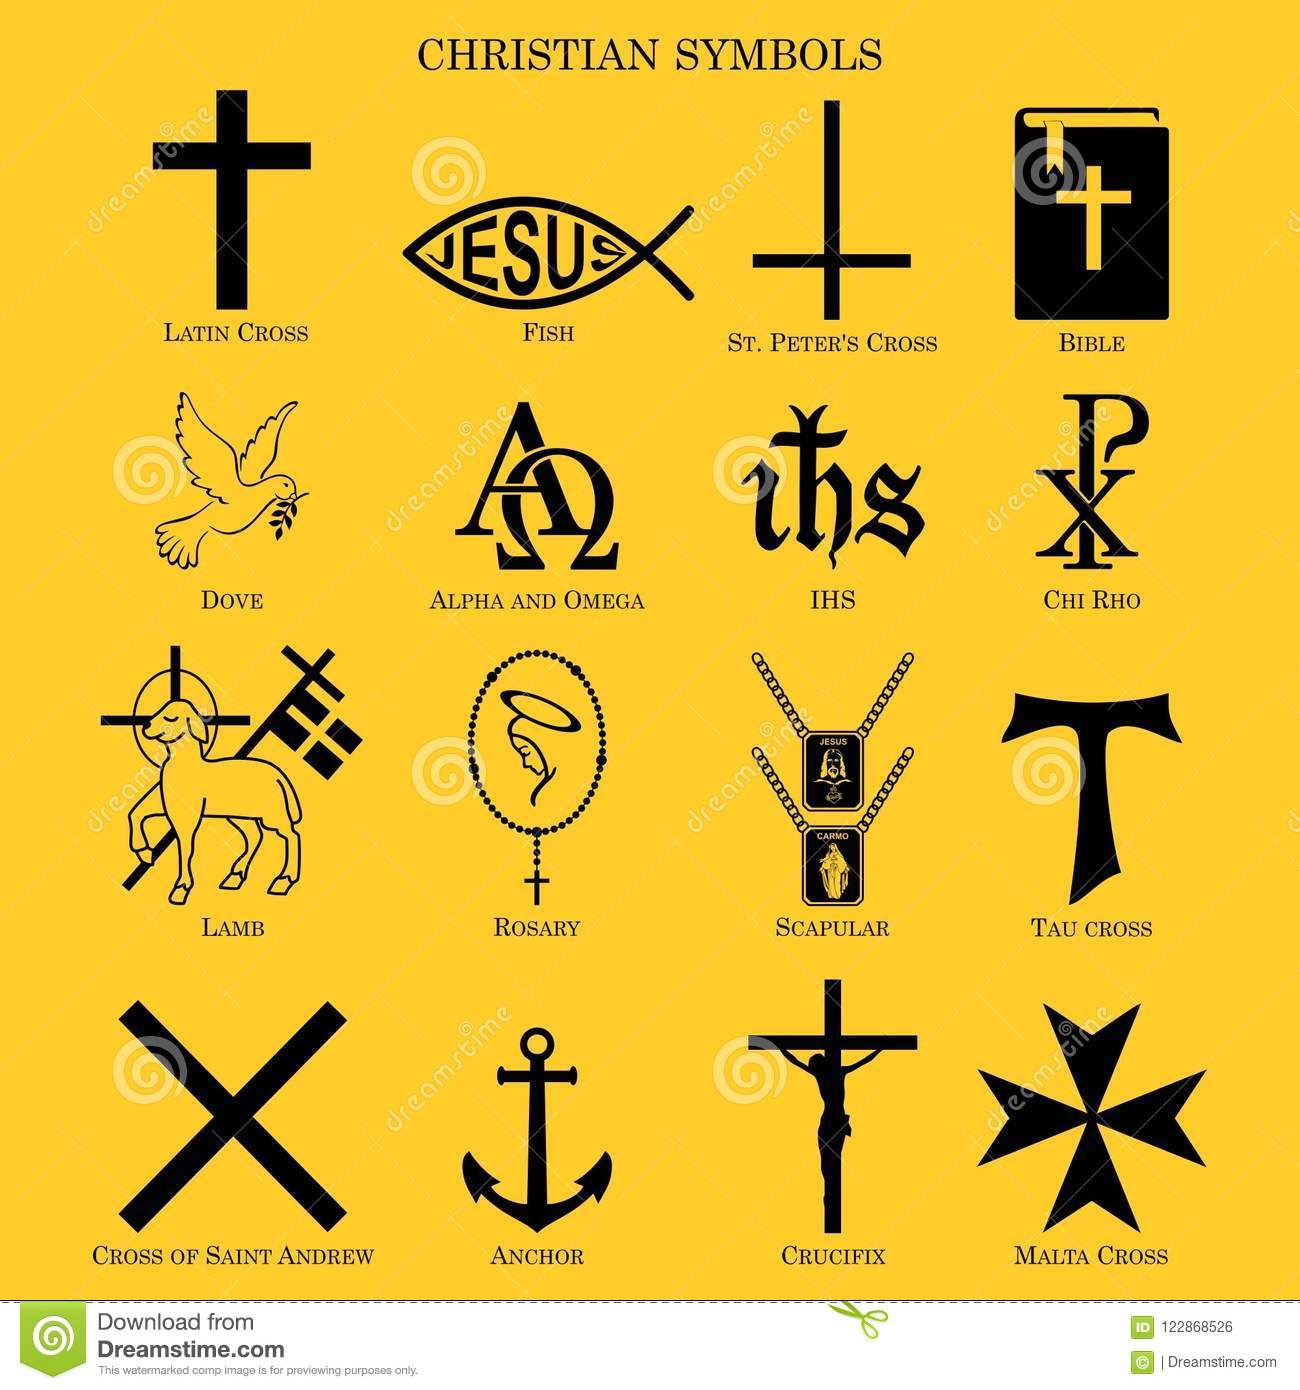 Christian Symbols Multiple Symbols Of Cristianity Stock Vector